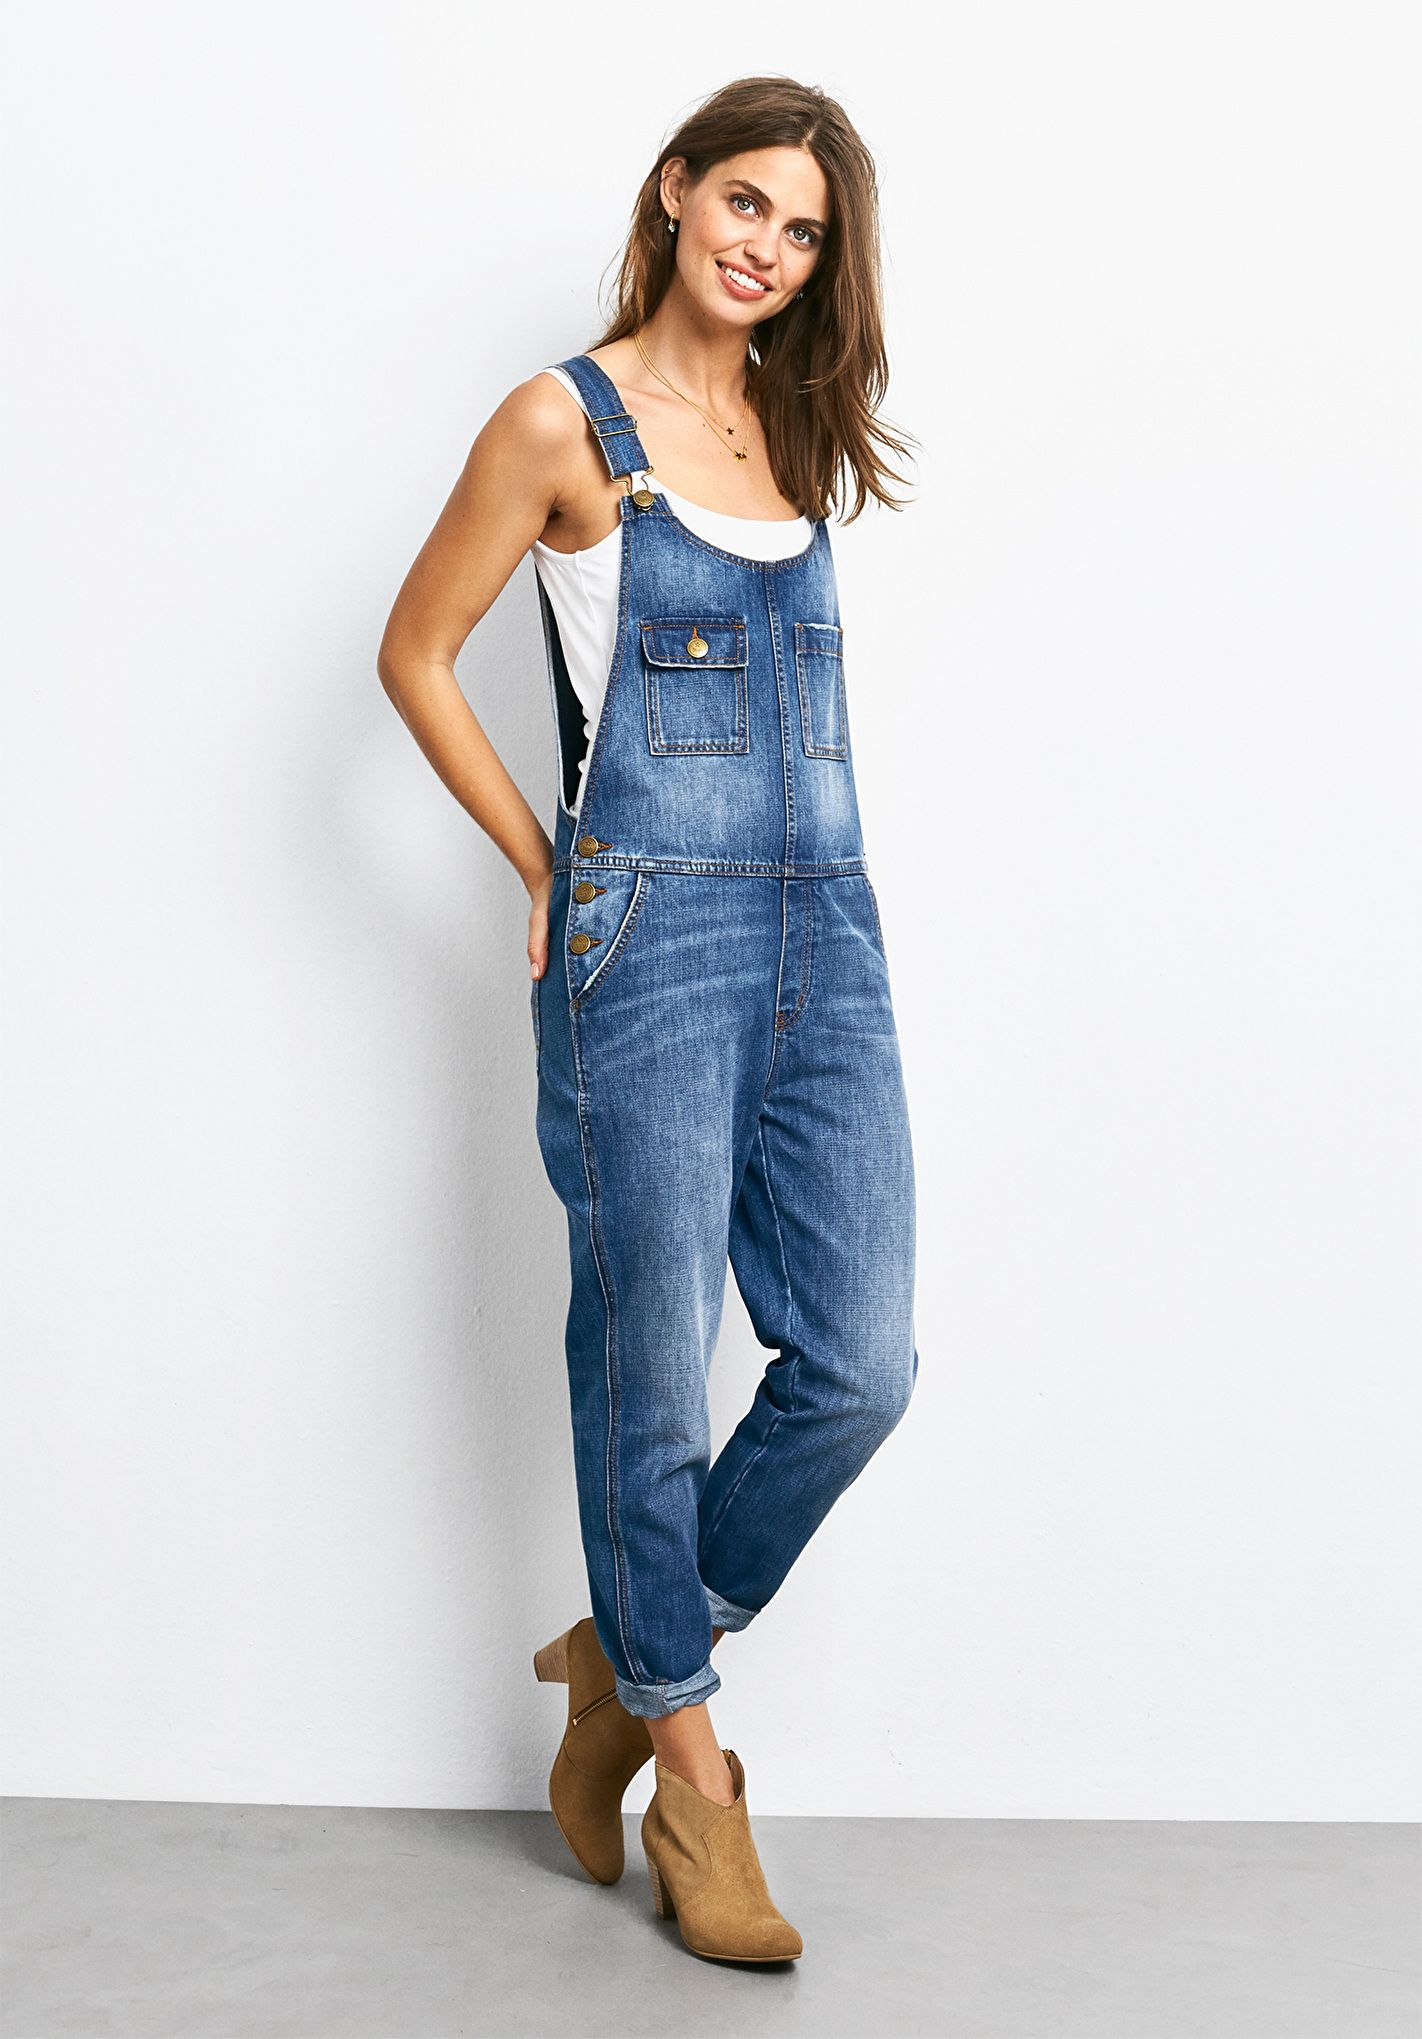 0d832c05ff8 Dungarees   Hair and fashion   Dungarees, Denim dungarees, Long ...